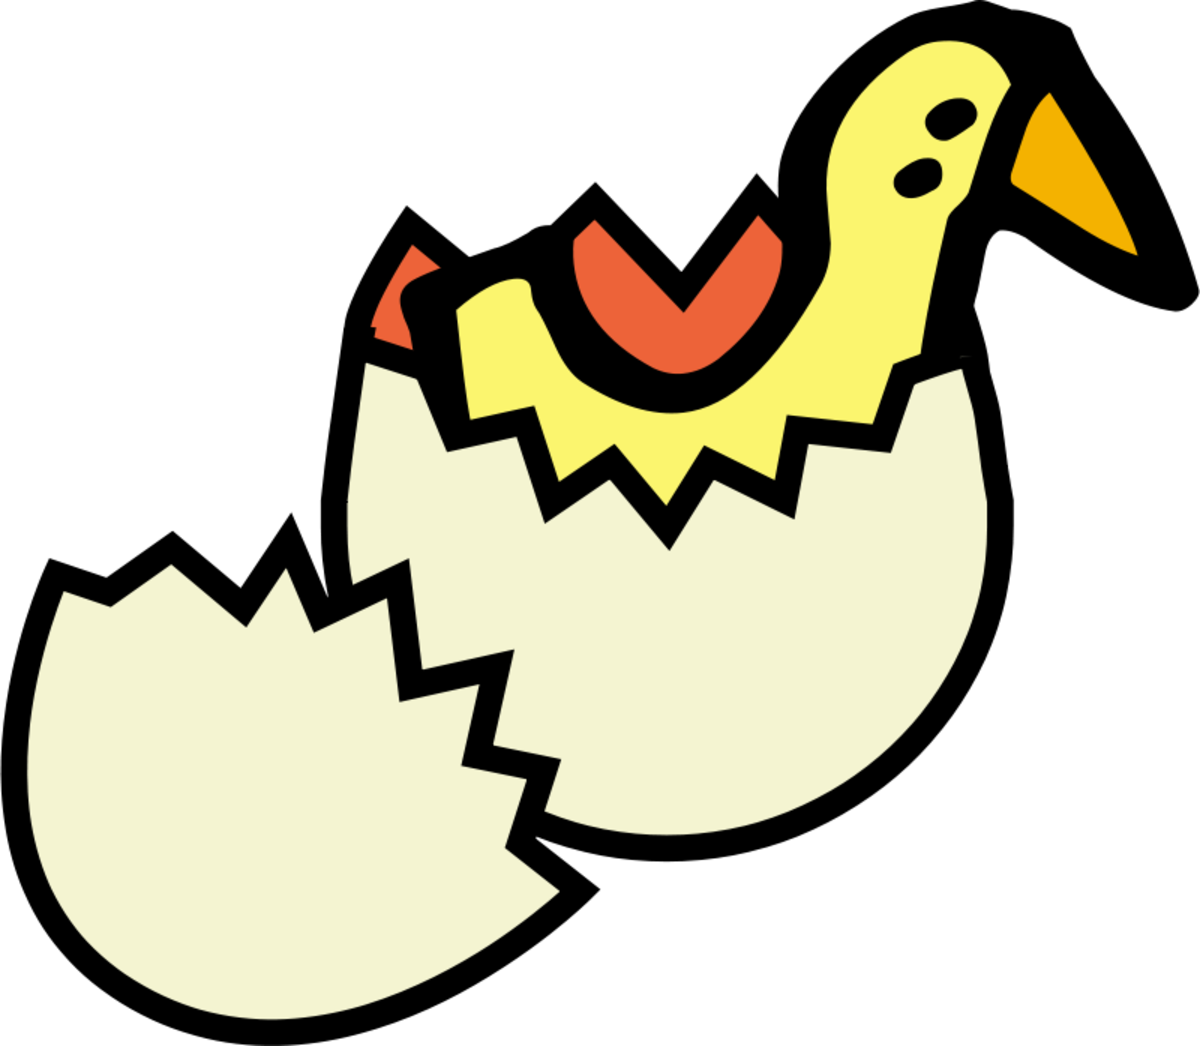 Spring Chick Hatching Clip Art